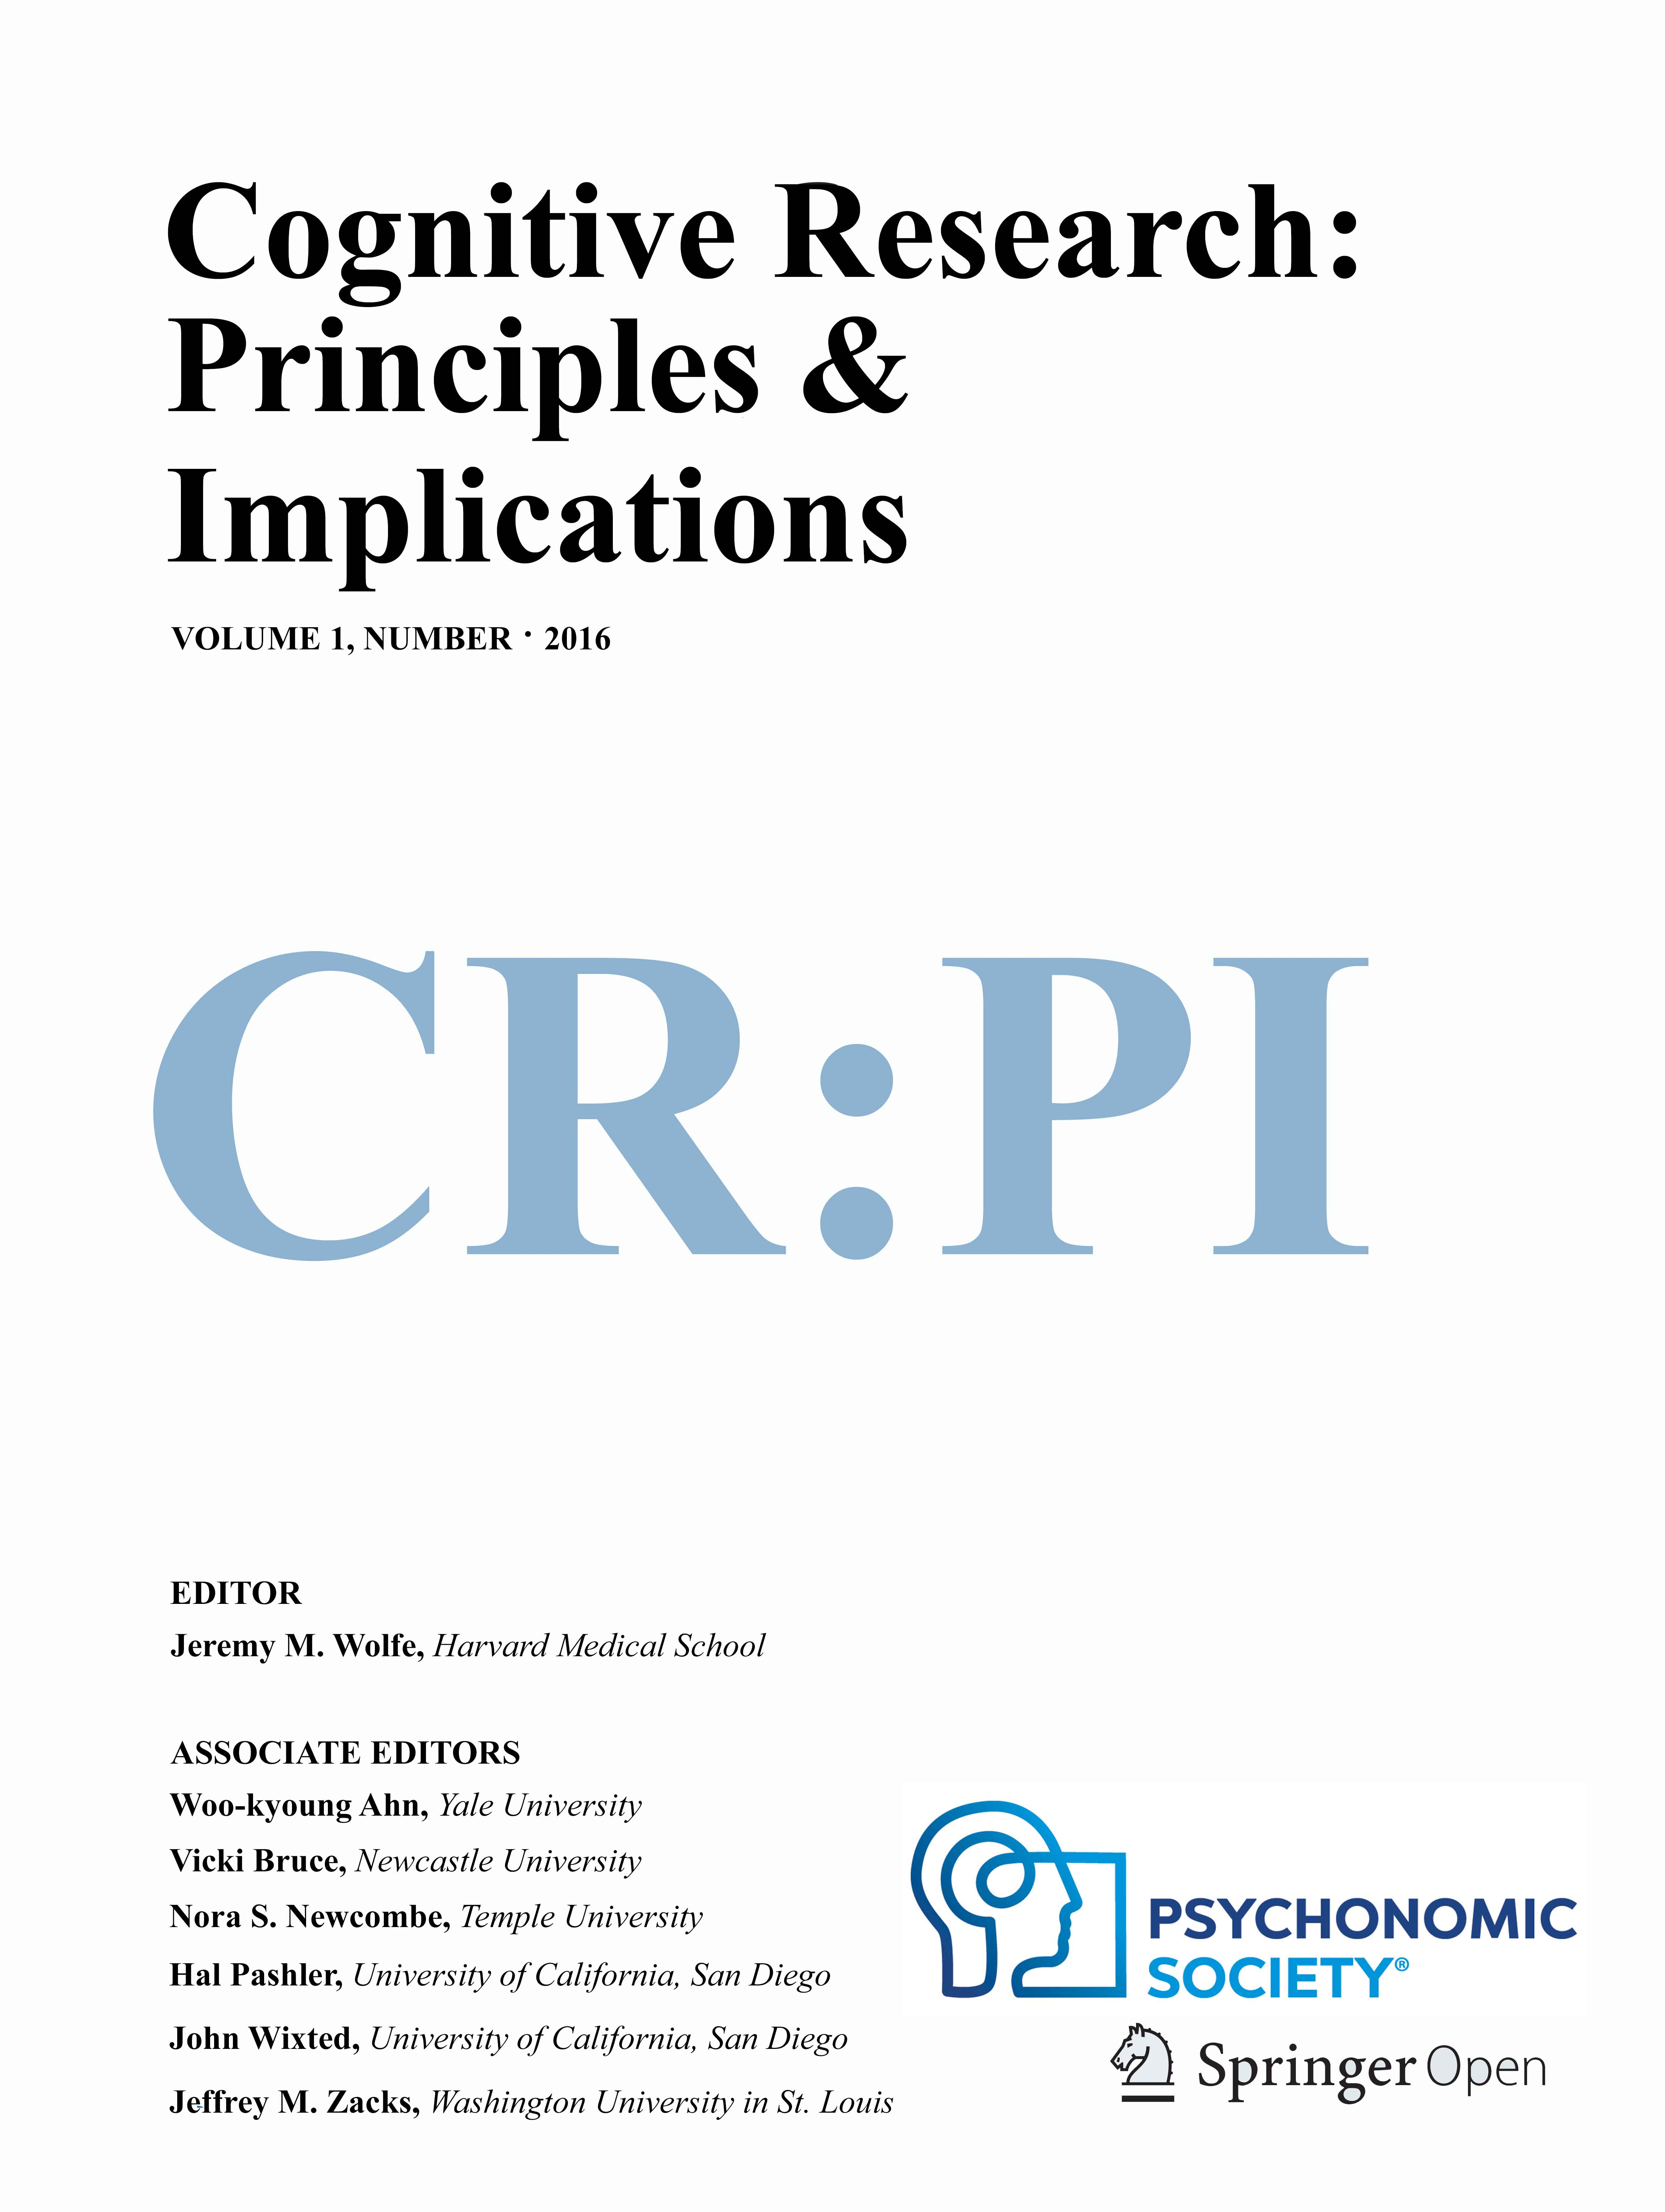 Cognitive Research: Principles & Implications